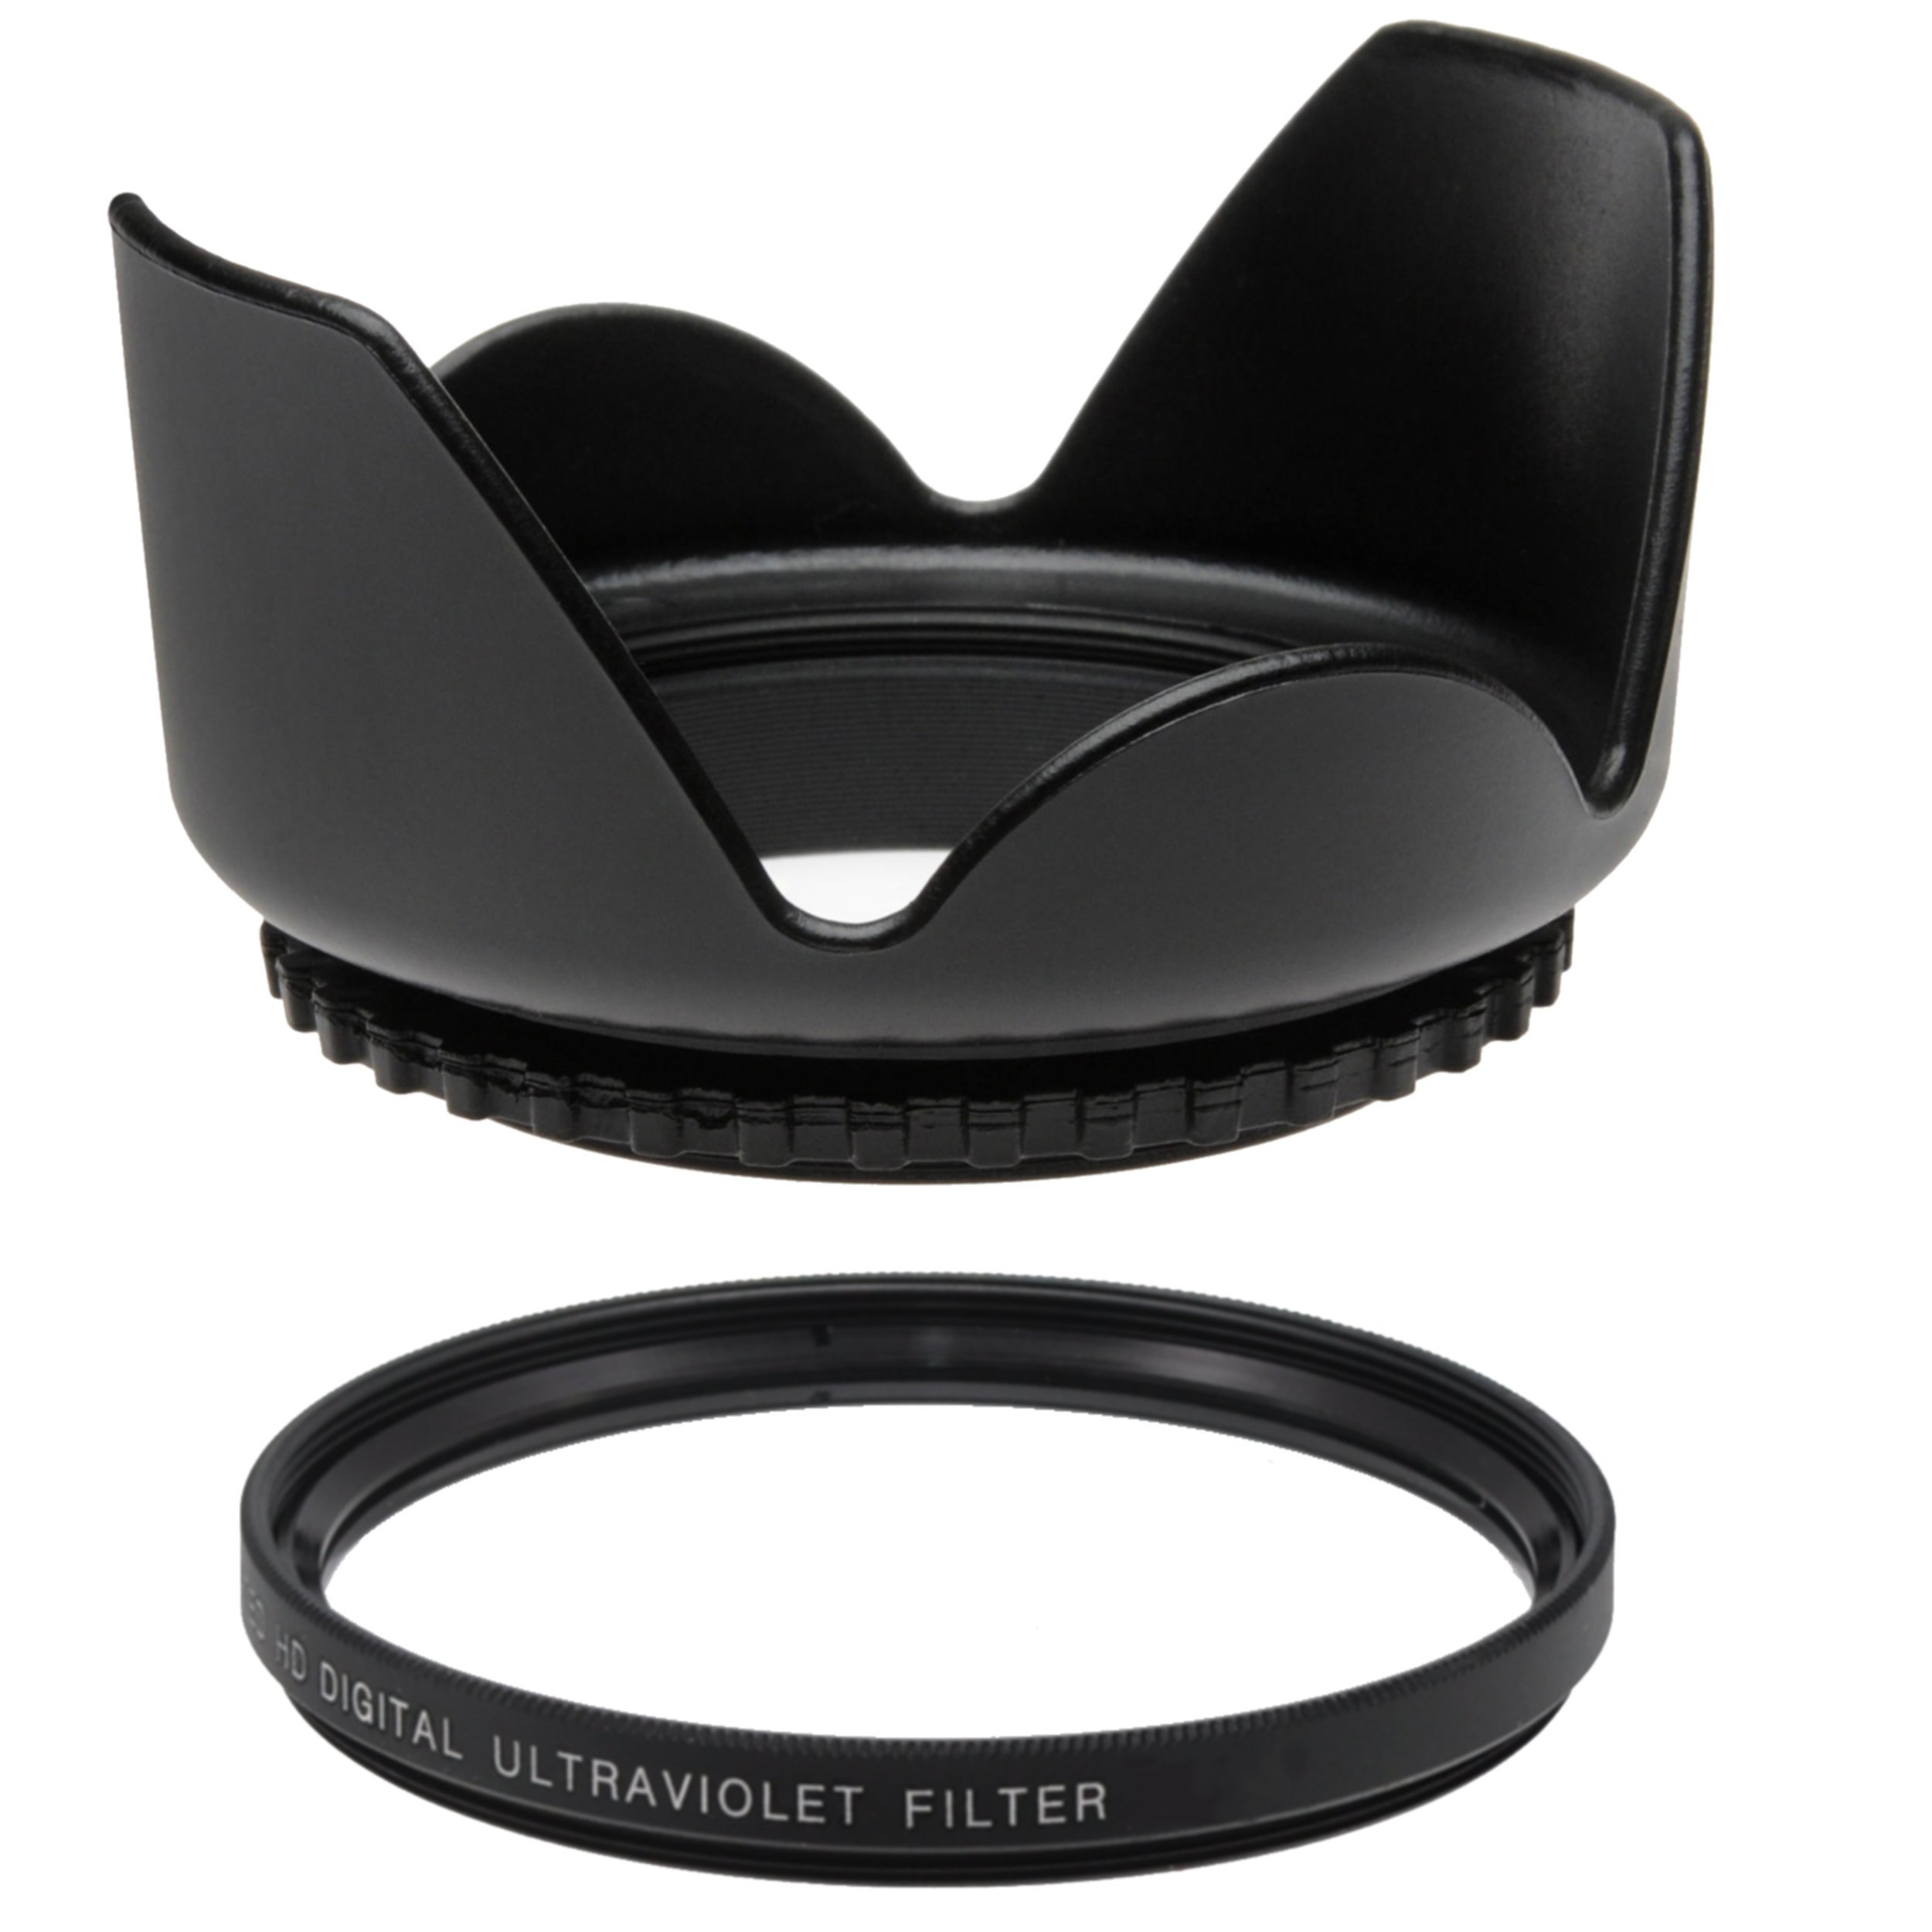 58MM UV Filter + 58mm Tulip Lens Hood for Olympus, Canon, Sigma, Tamron, Pentax SLR and DSLR Lenses 58 mm Ultraviolet Filter & 58 mm Lens Hood by Shop Smart Deals